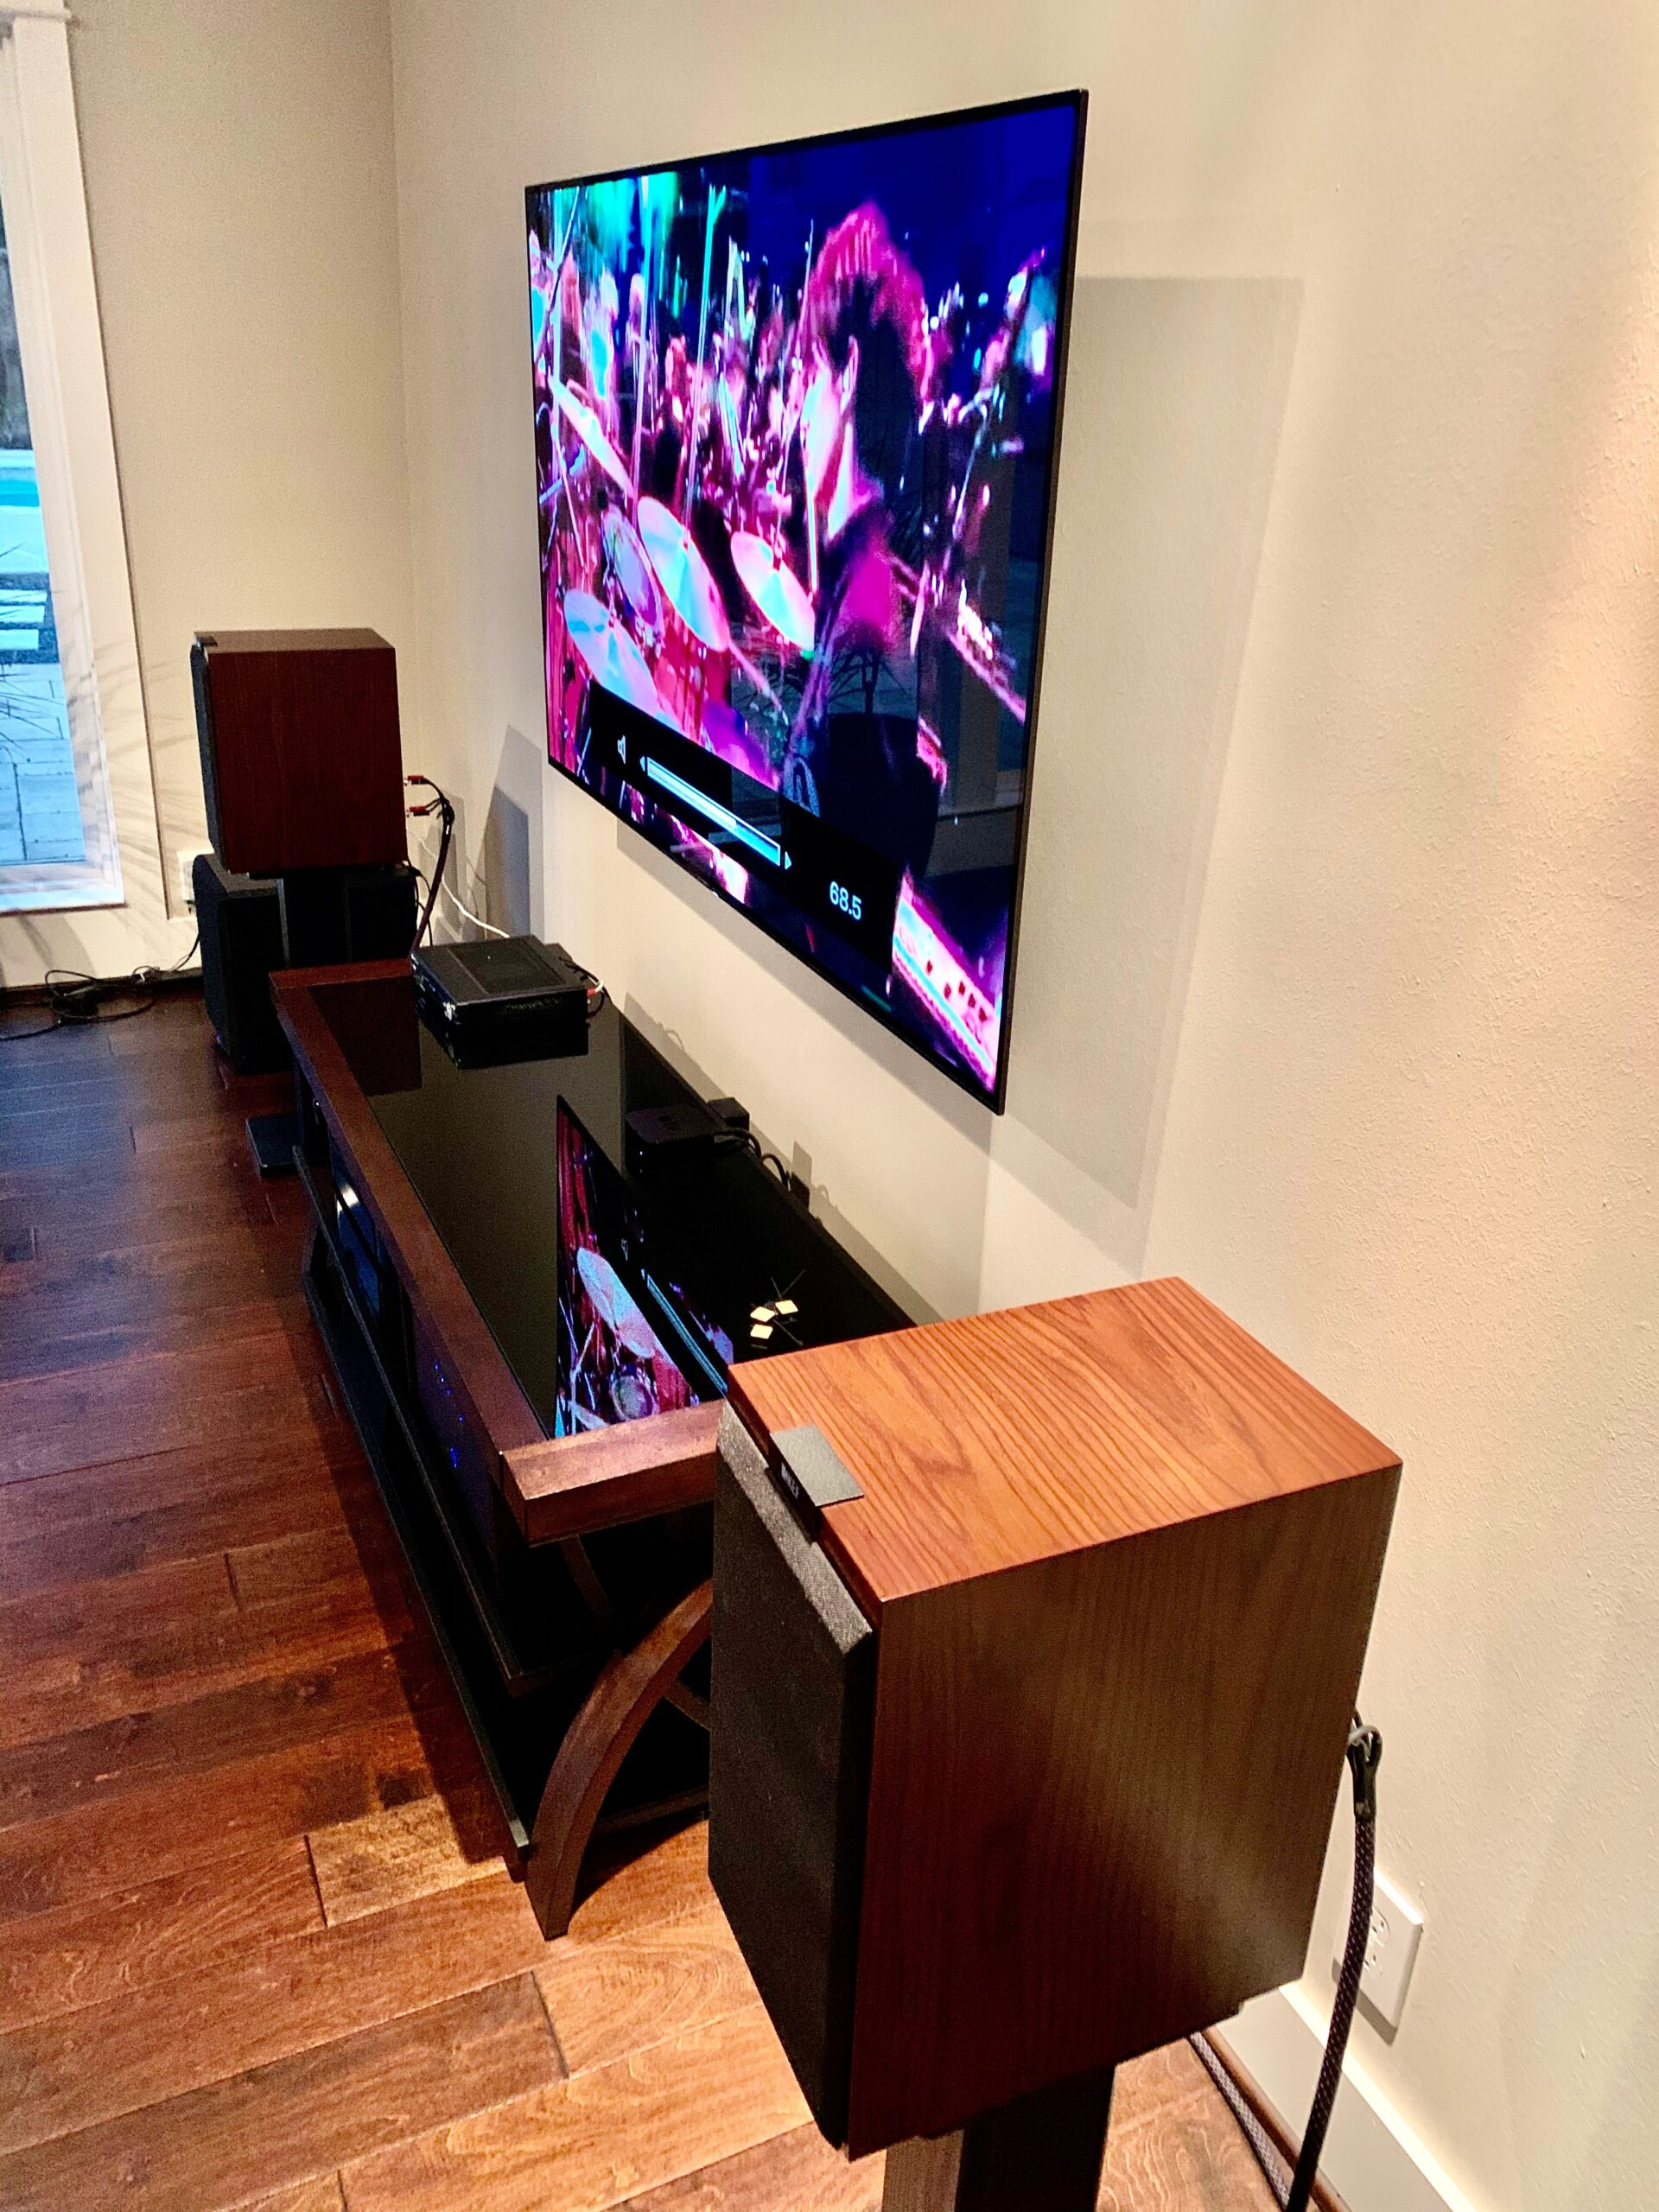 Mounted flat screen and loudspeakers audio system